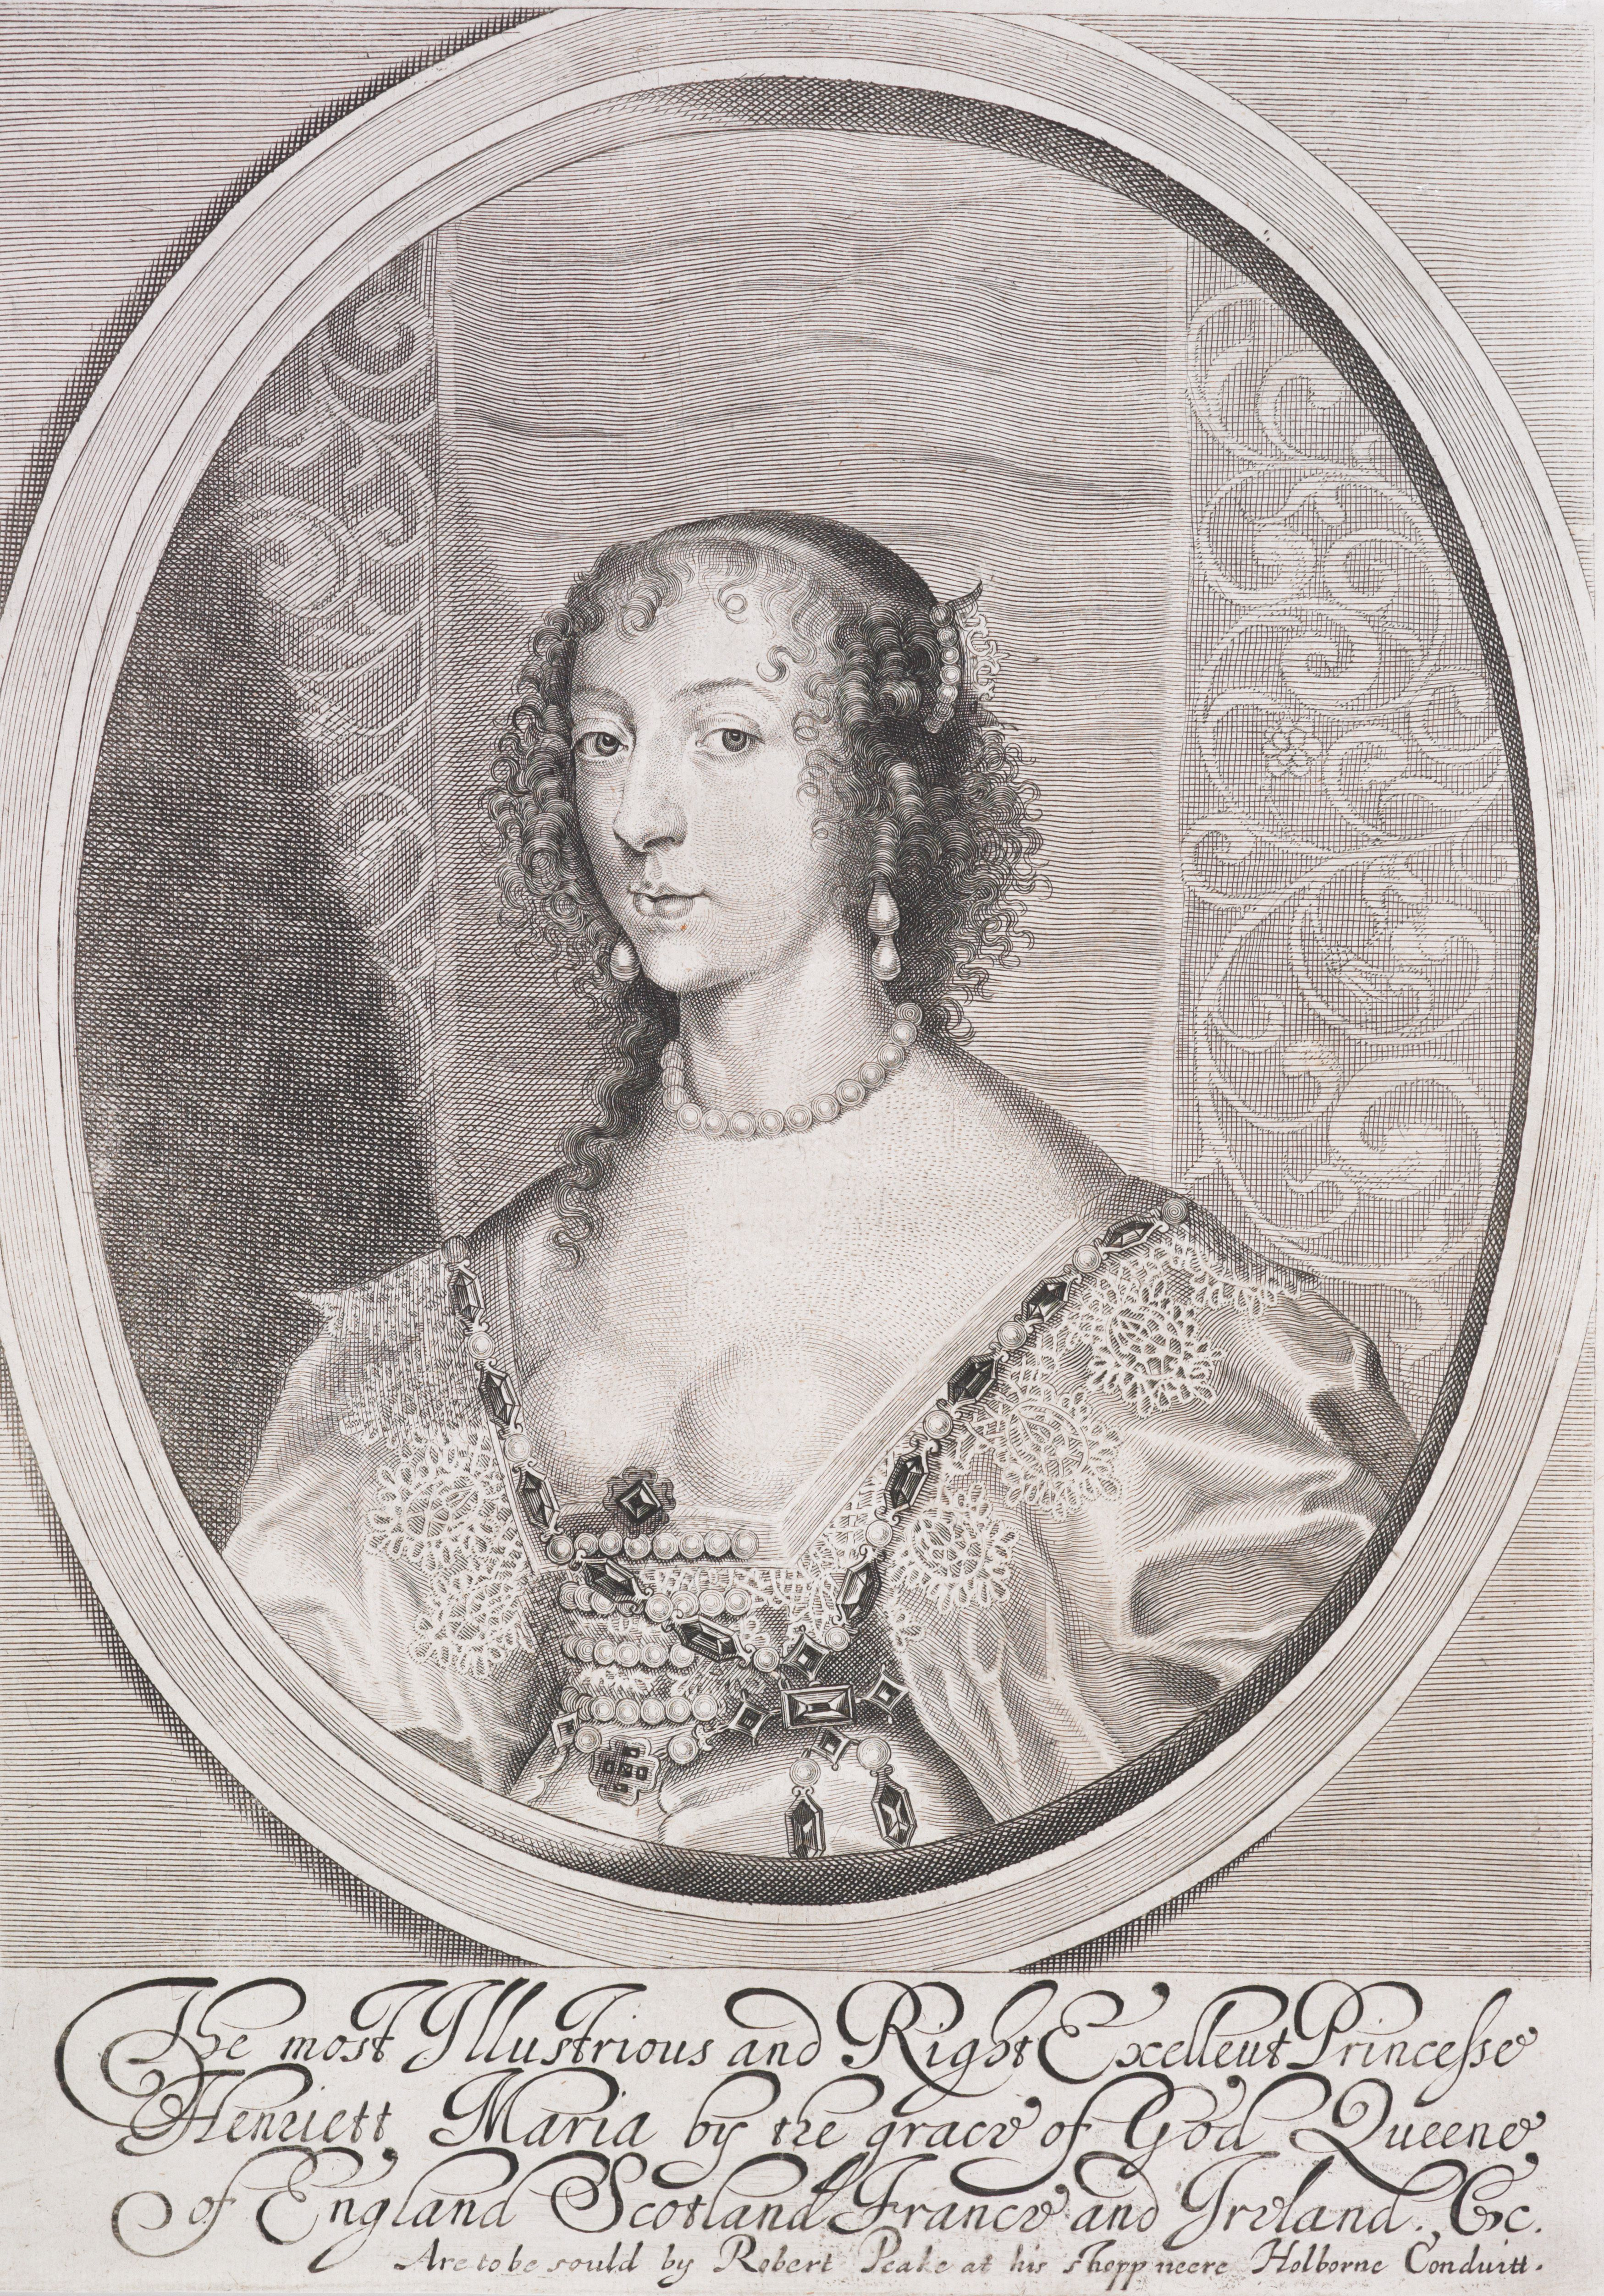 Etching of a lady in pearls and a low-cut bodice